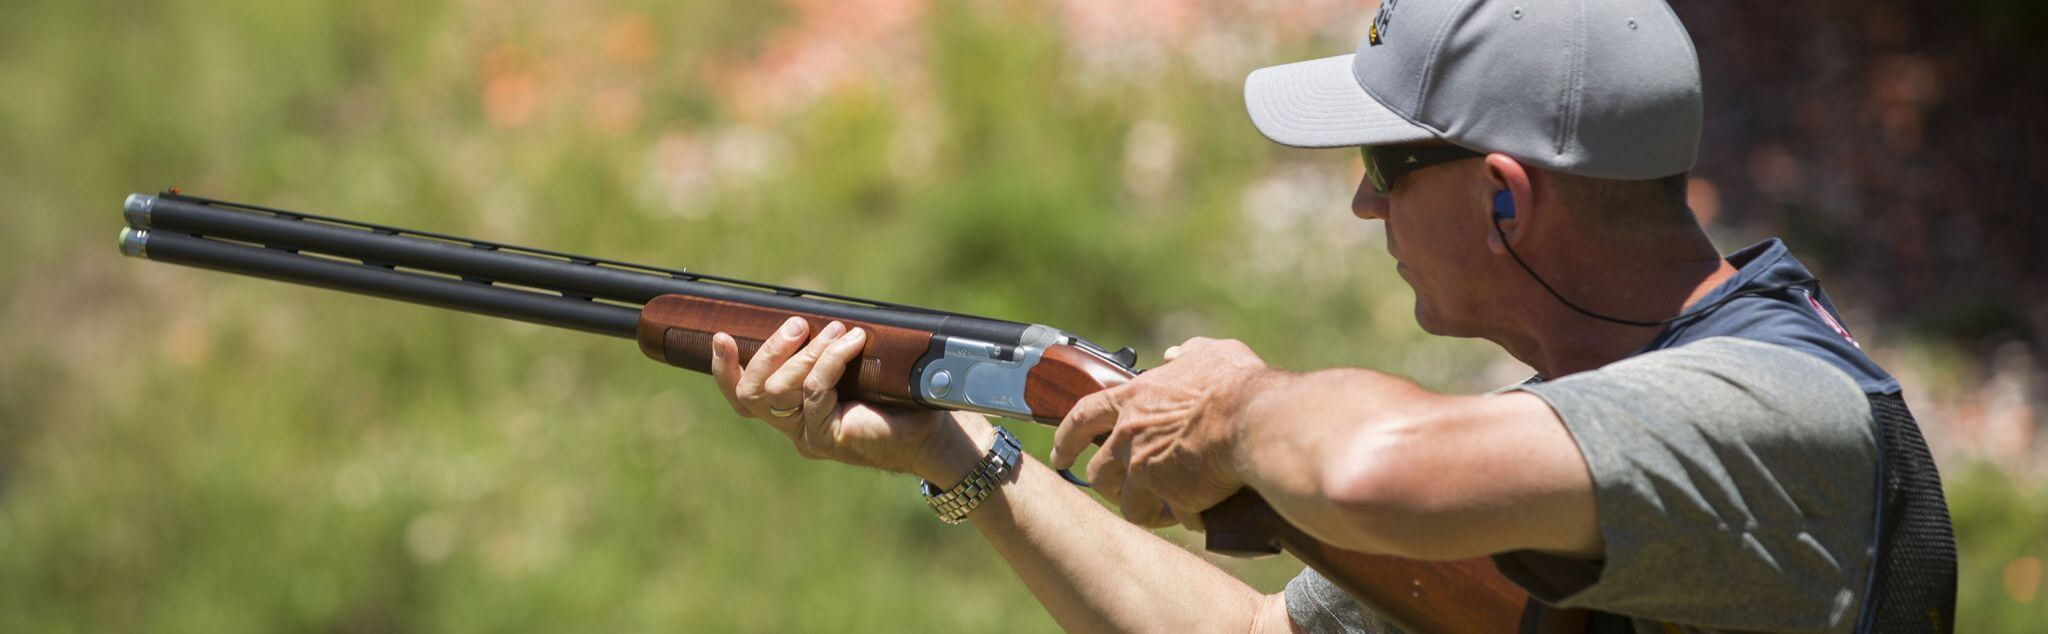 Clay Pigeon Shooting in Swansea